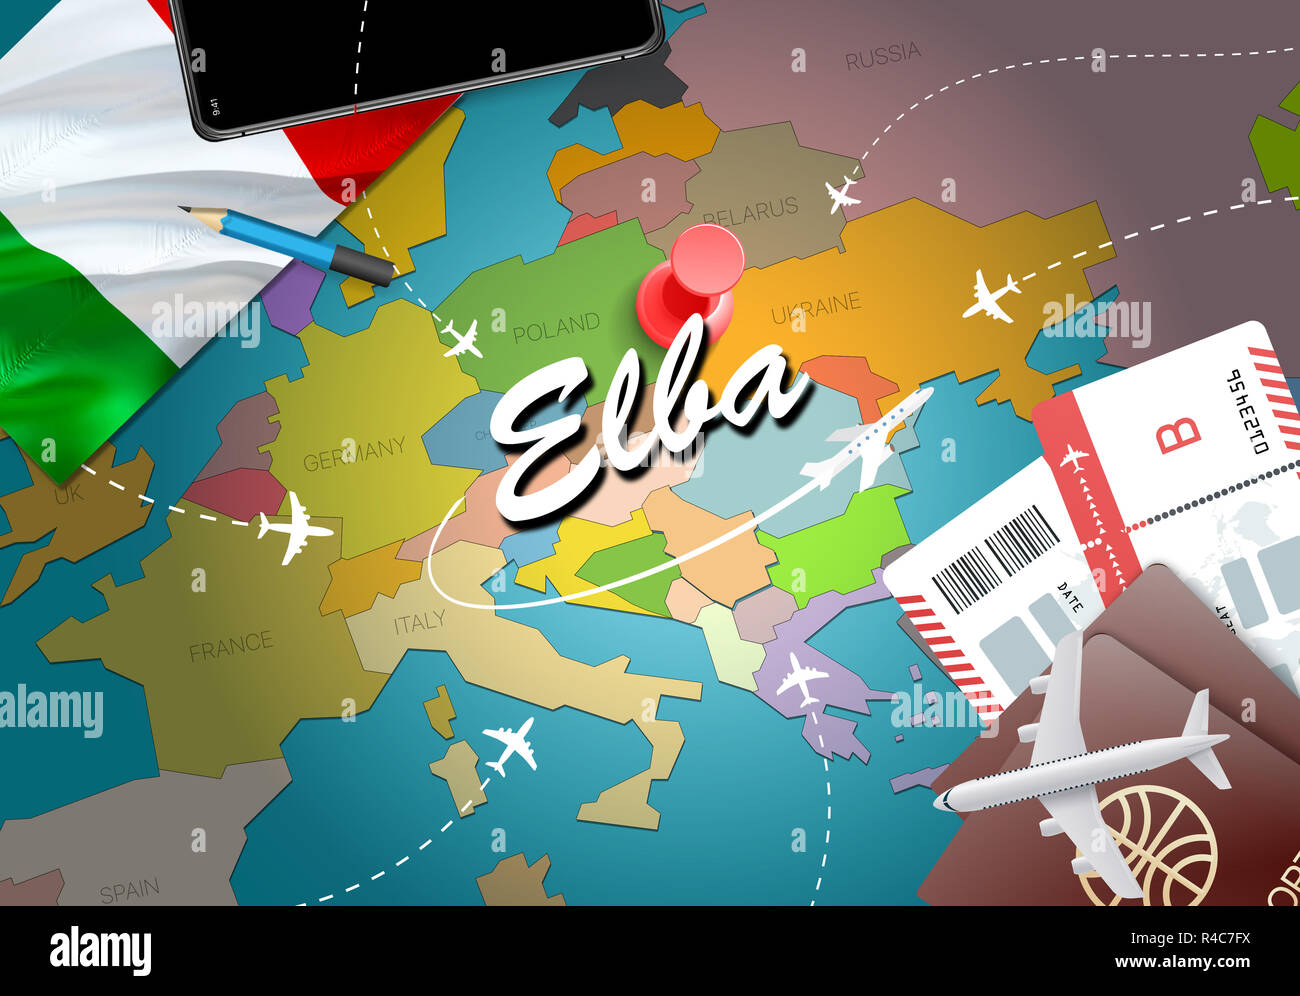 Map Of Germany And Italy With Cities.Elba City Travel And Tourism Destination Concept Italy Flag And